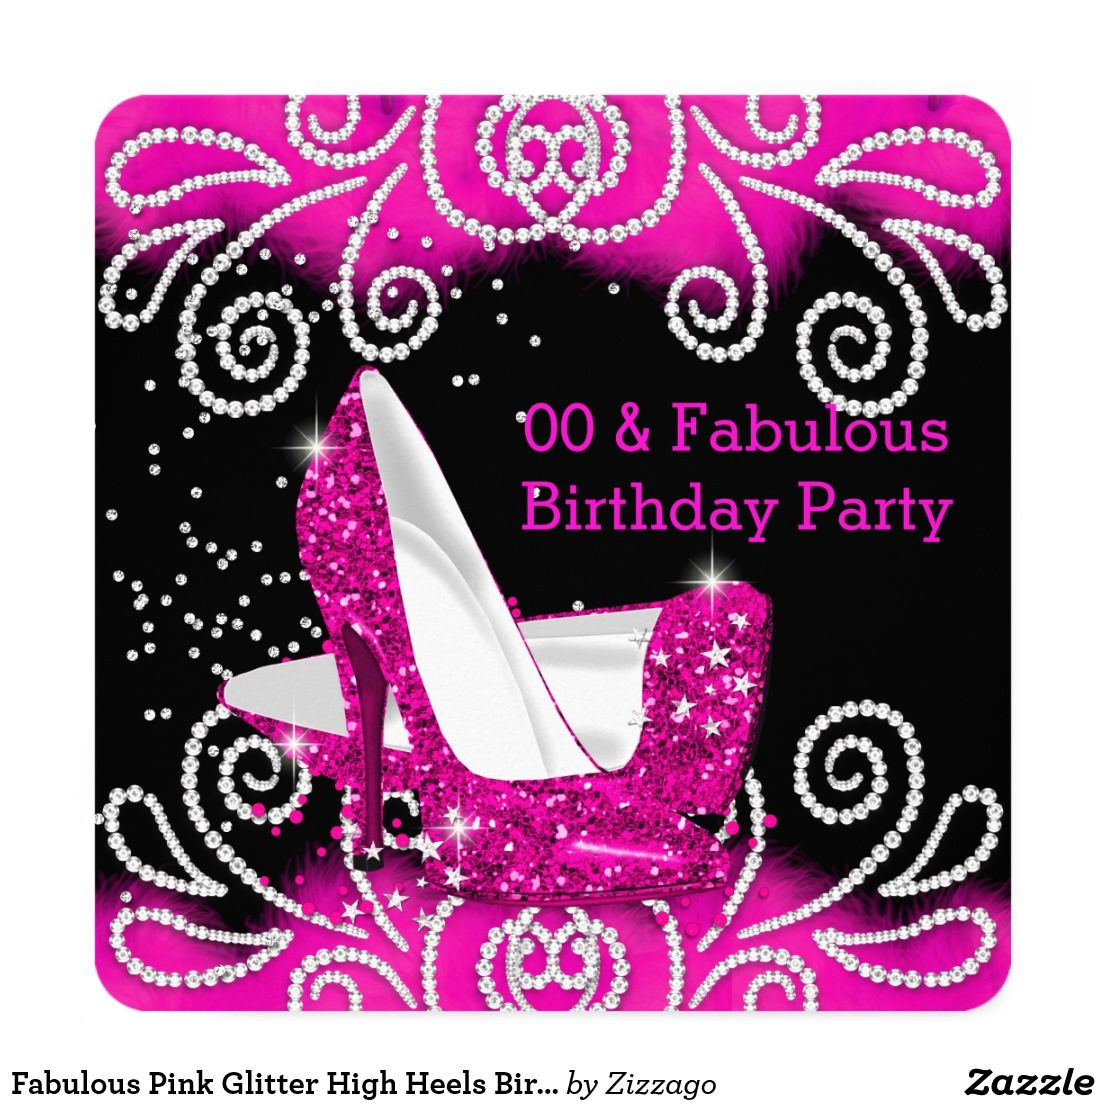 Fabulous Pink Glitter High Heels Birthday Party Invitation